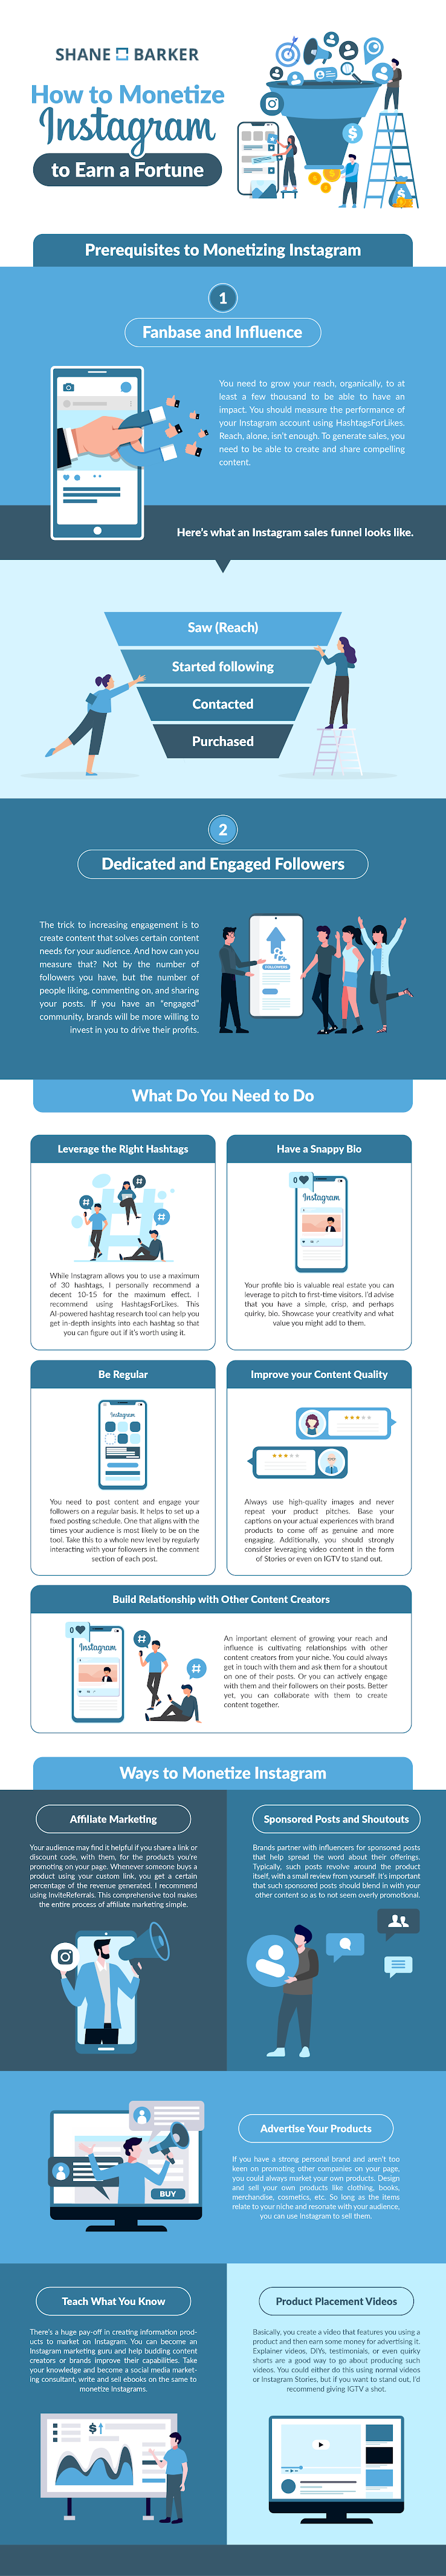 How to Monetize Instagram to Earn a Fortune #infographic